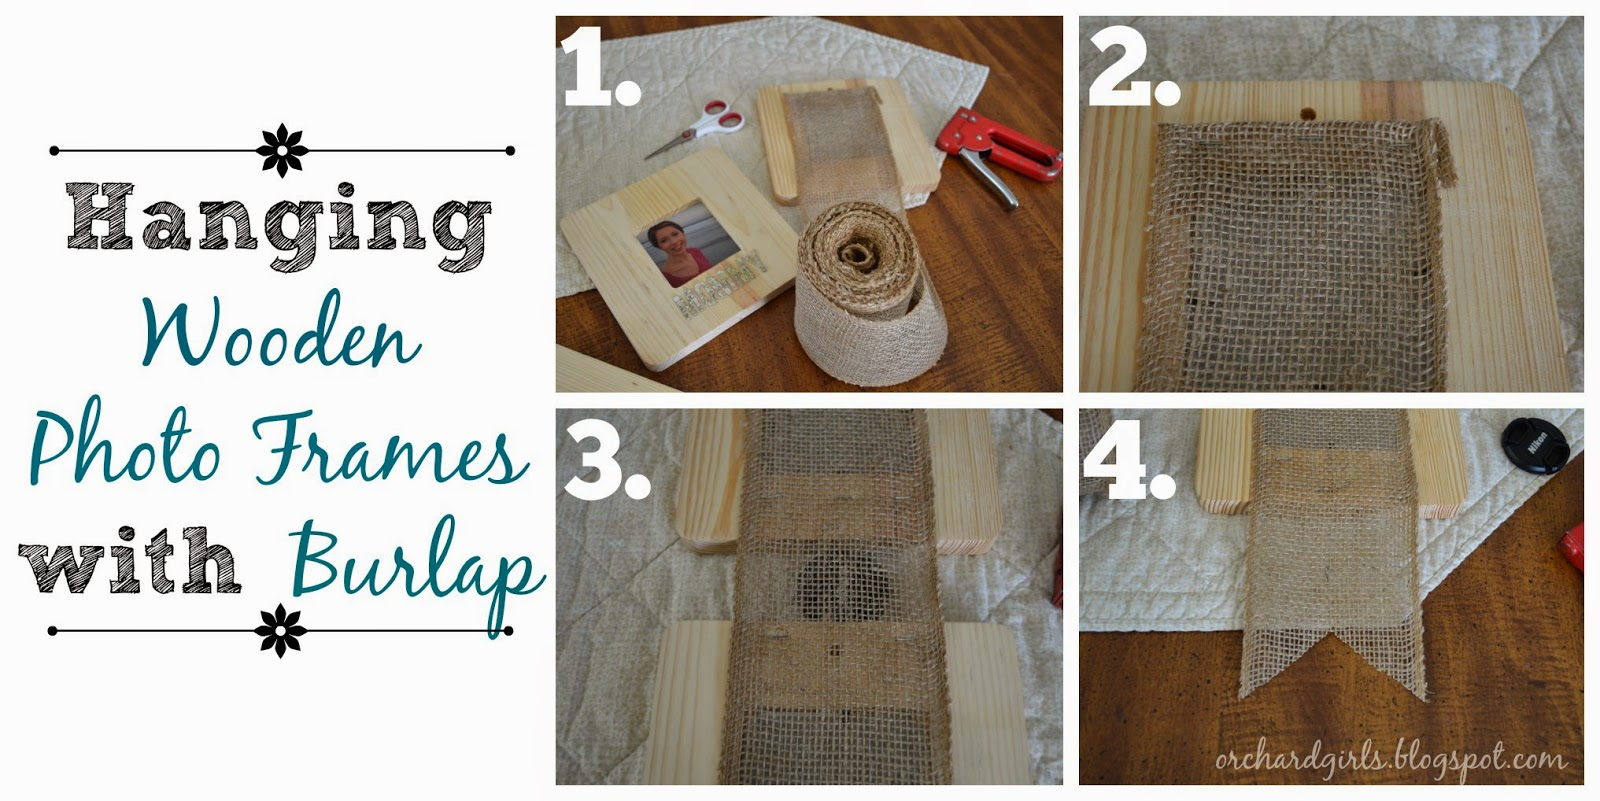 Orchard Girls: Hanging Wooden Photo Frames with Burlap